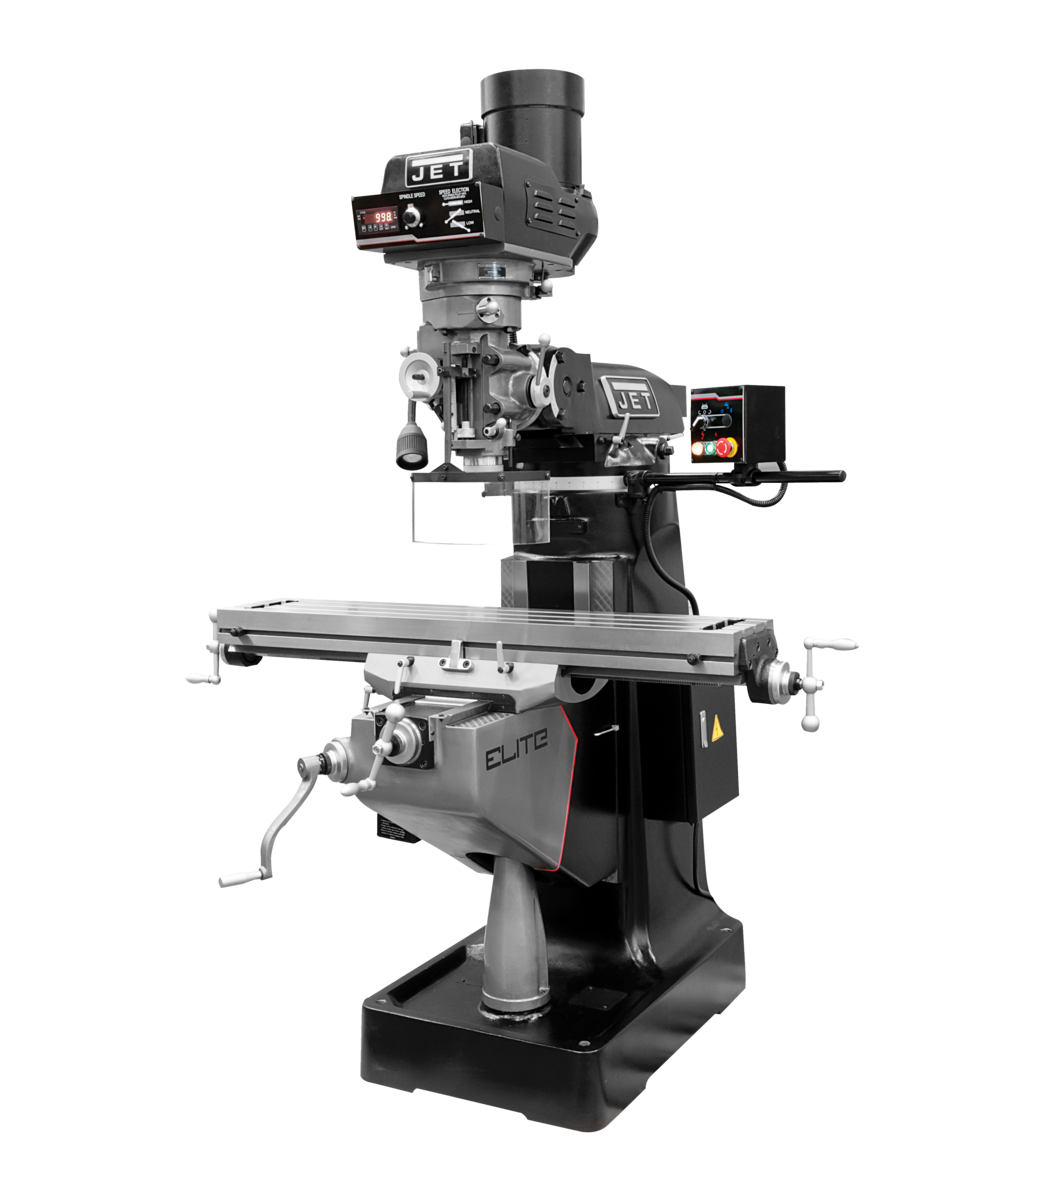 EVS-949 Mill with 3-Axis ACU-RITE 203 (Knee) DRO and X-Axis JET Powerfeed and USA Made Air Draw Bar